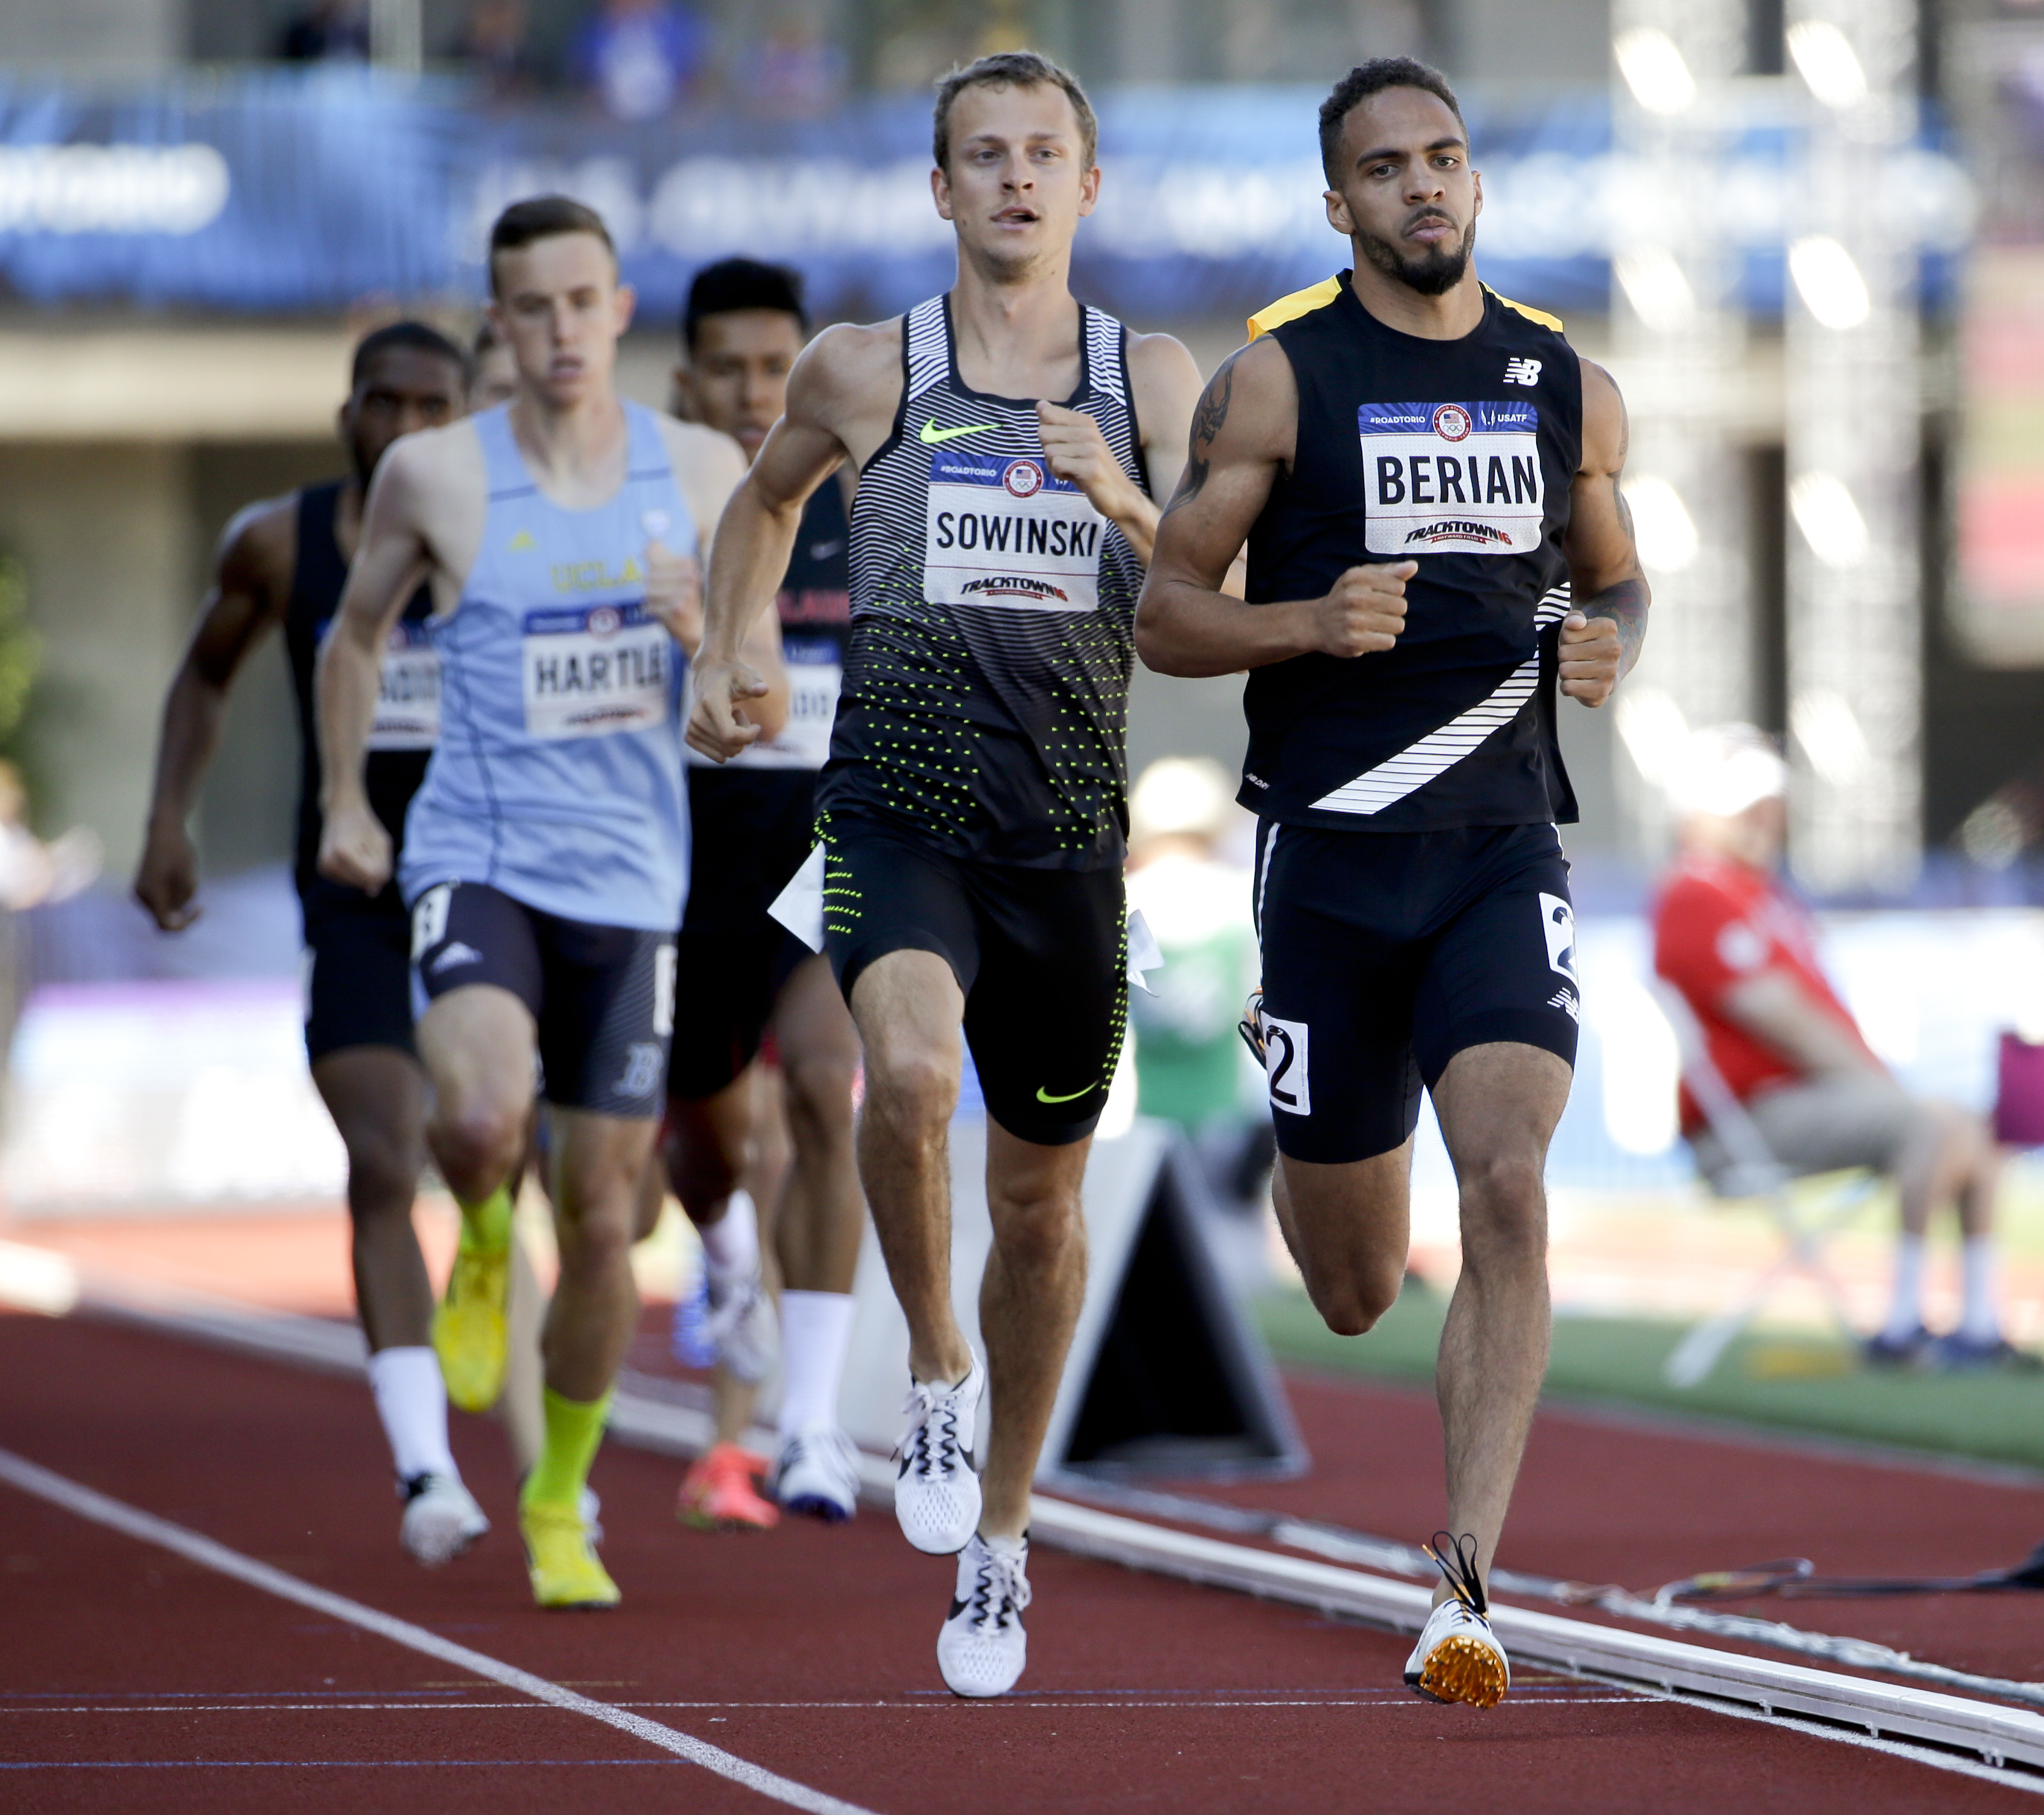 Boris Berian, right, wins his heat during qualifying for men's 800-meter run at the U.S. Olympic Track and Field Trials, Friday, July 1, 2016, in Eugene Ore. (AP Photo/Marcio Jose Sanchez)